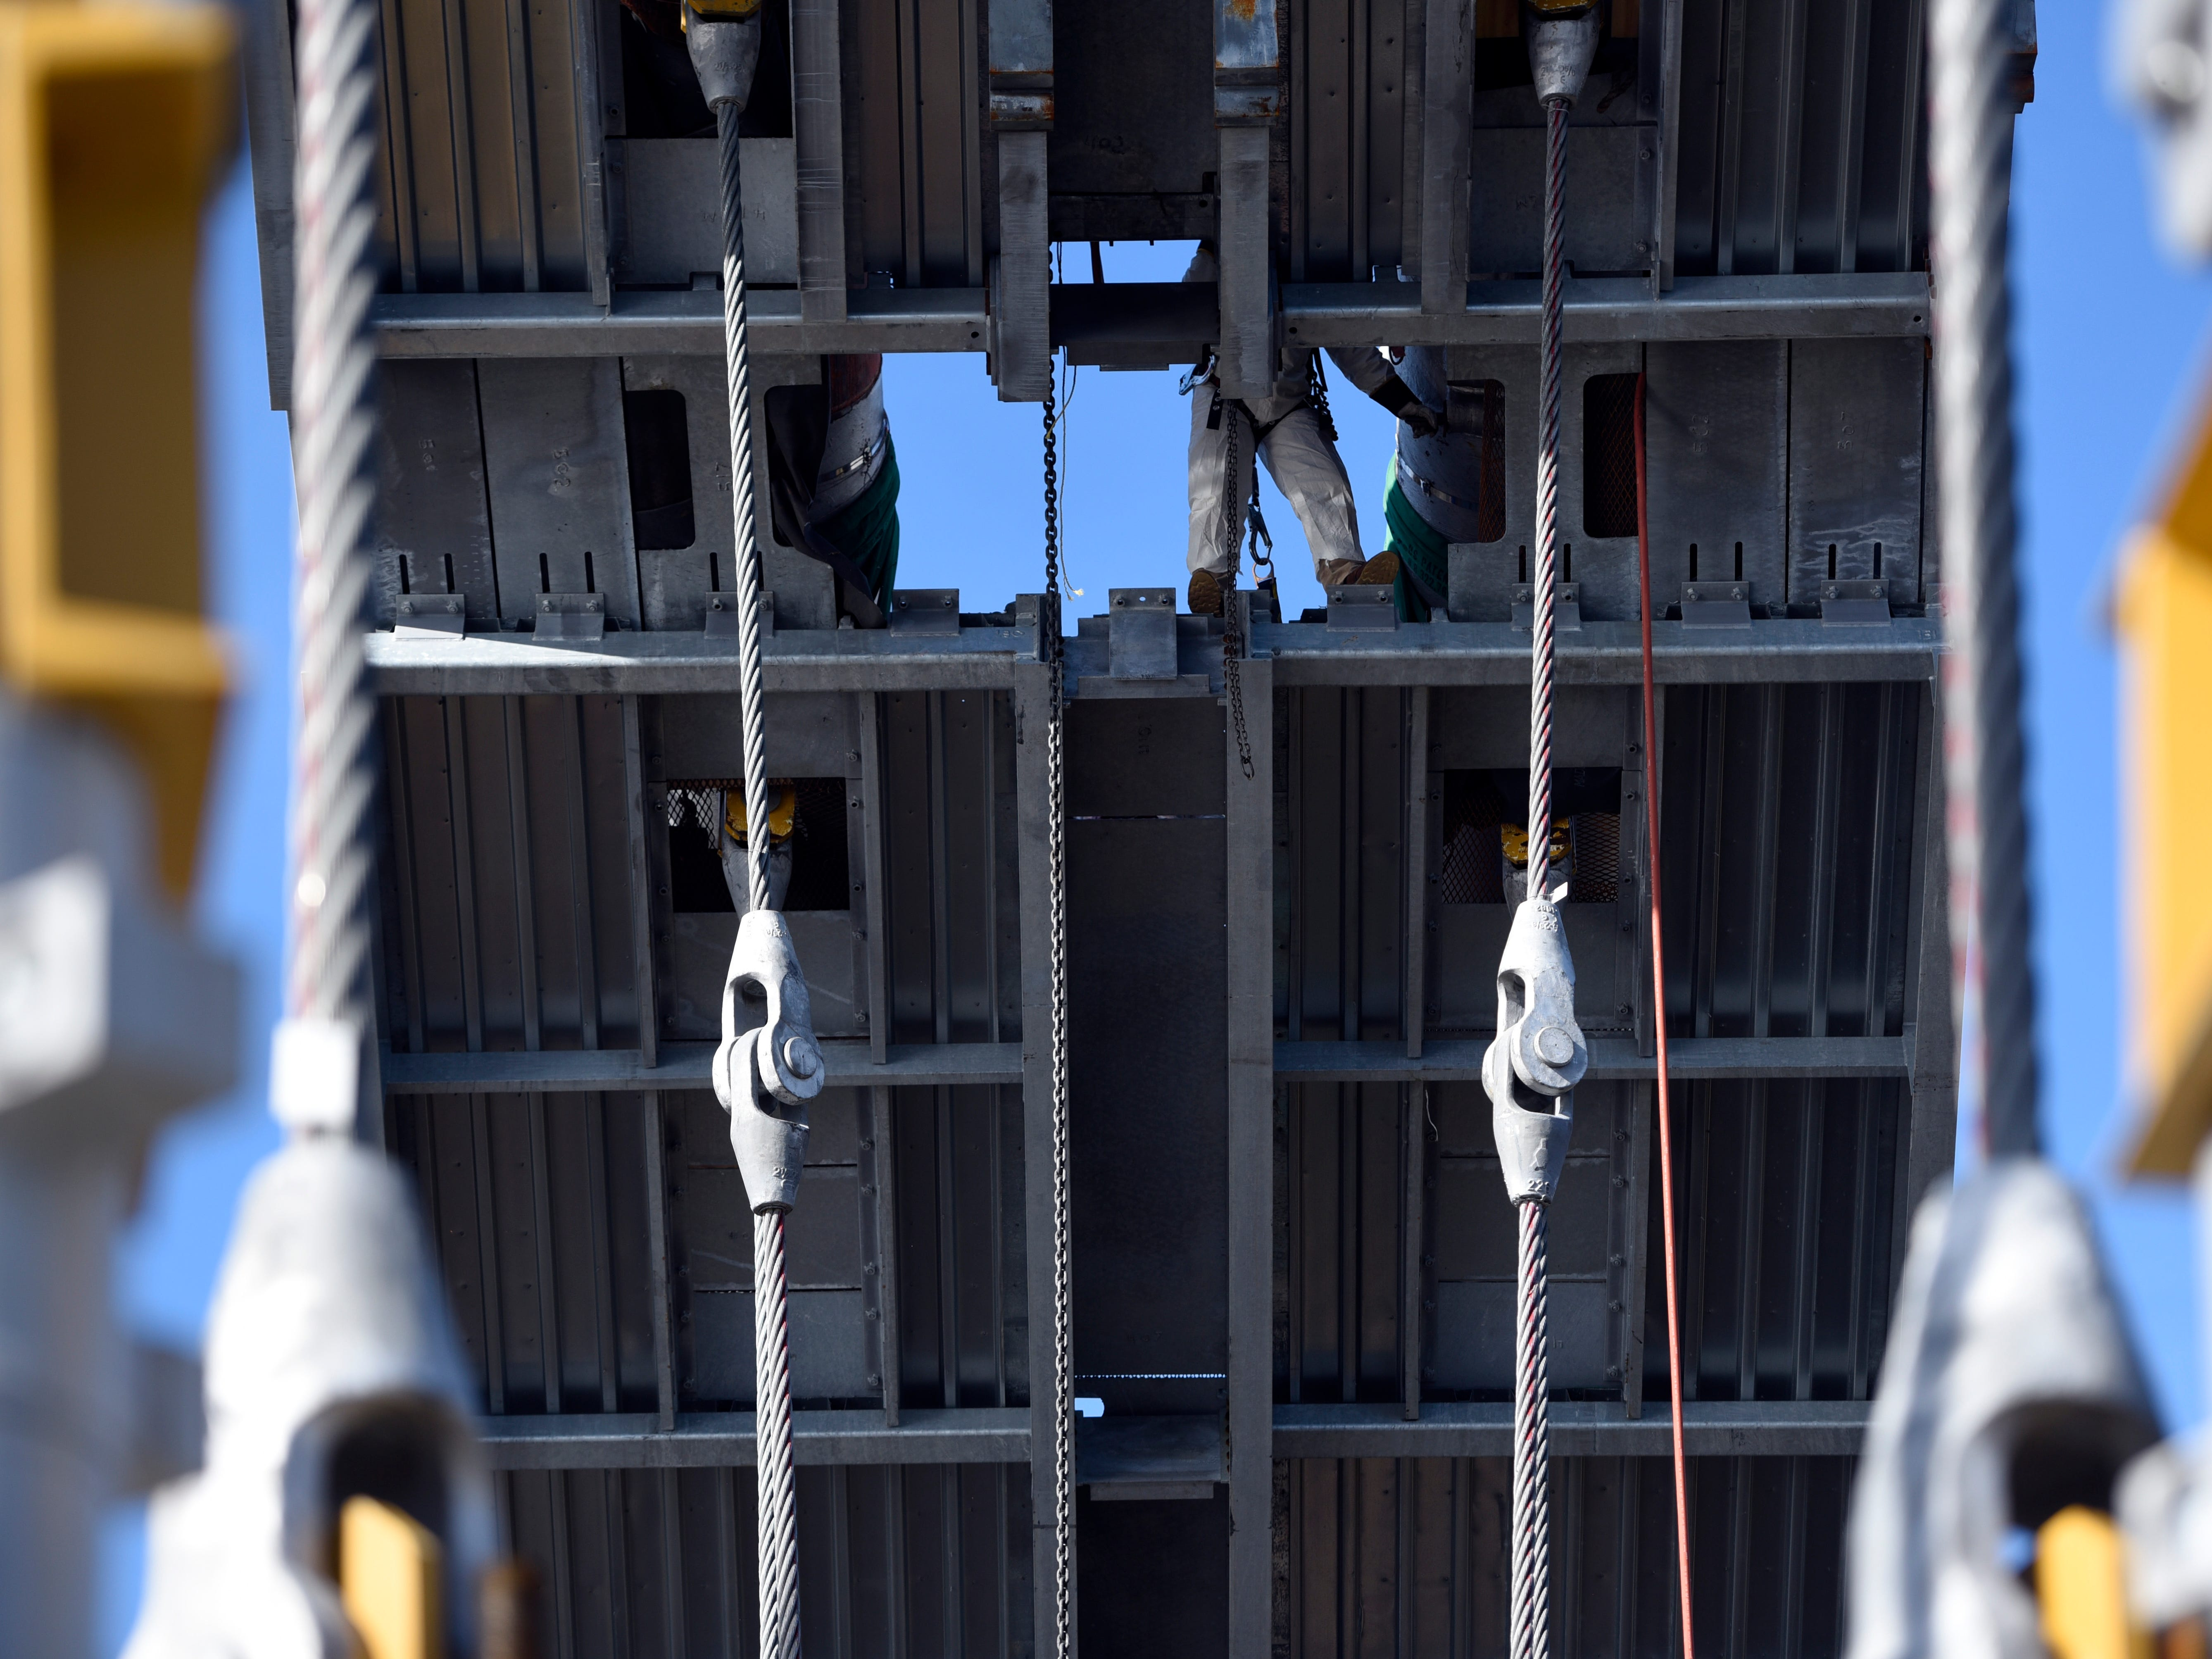 An engineer works on a temporary platform surrounding two of the main cables of the George Washington Bridge on Wednesday, Nov. 14, 2018, in Fort Lee.